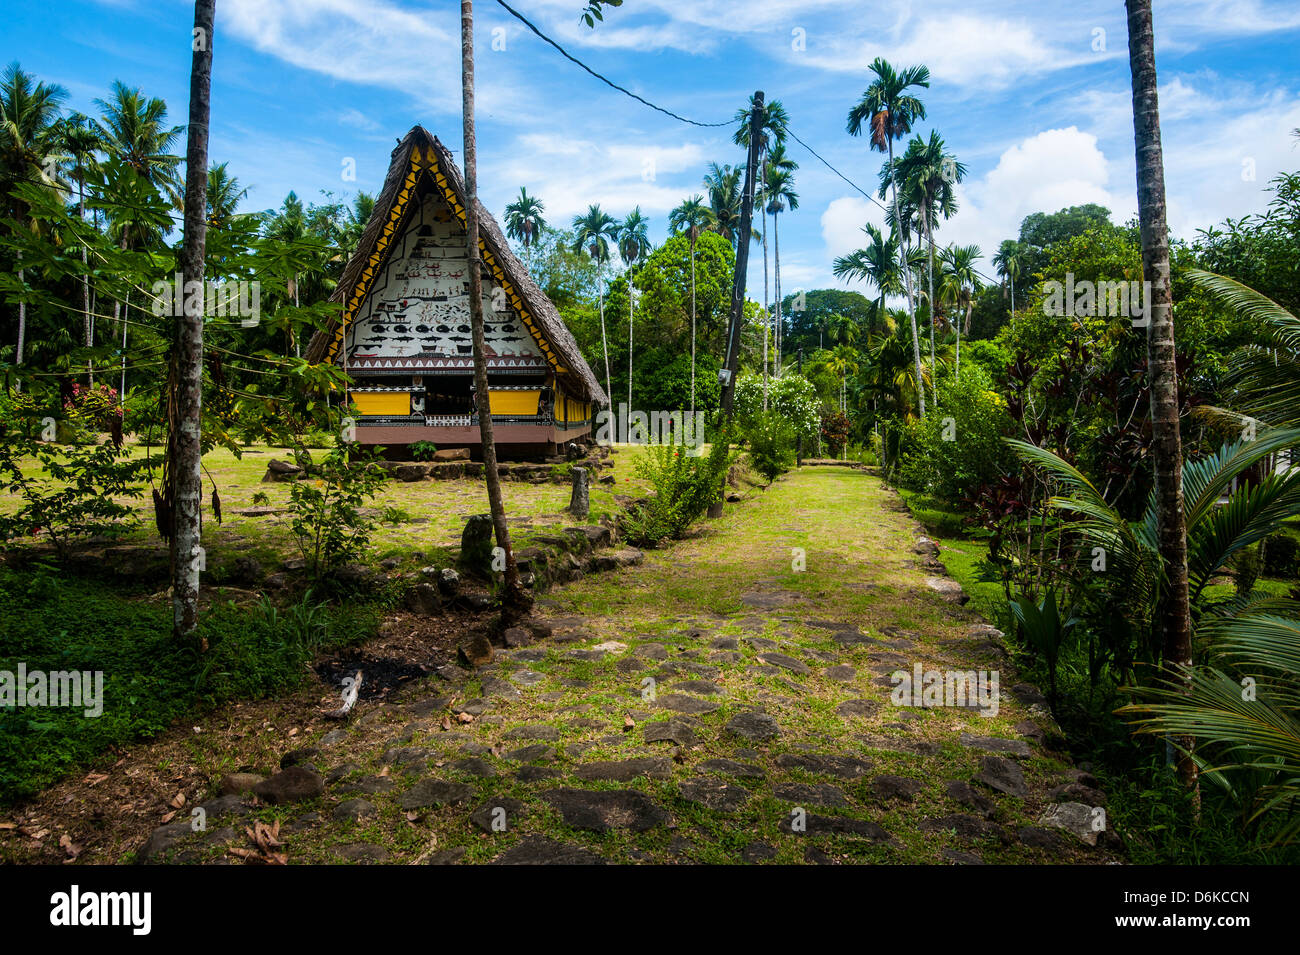 Oldest Bai of Palau, a house for the village chiefs, Island of Babeldoab, Palau, Central Pacific, Pacific - Stock Image